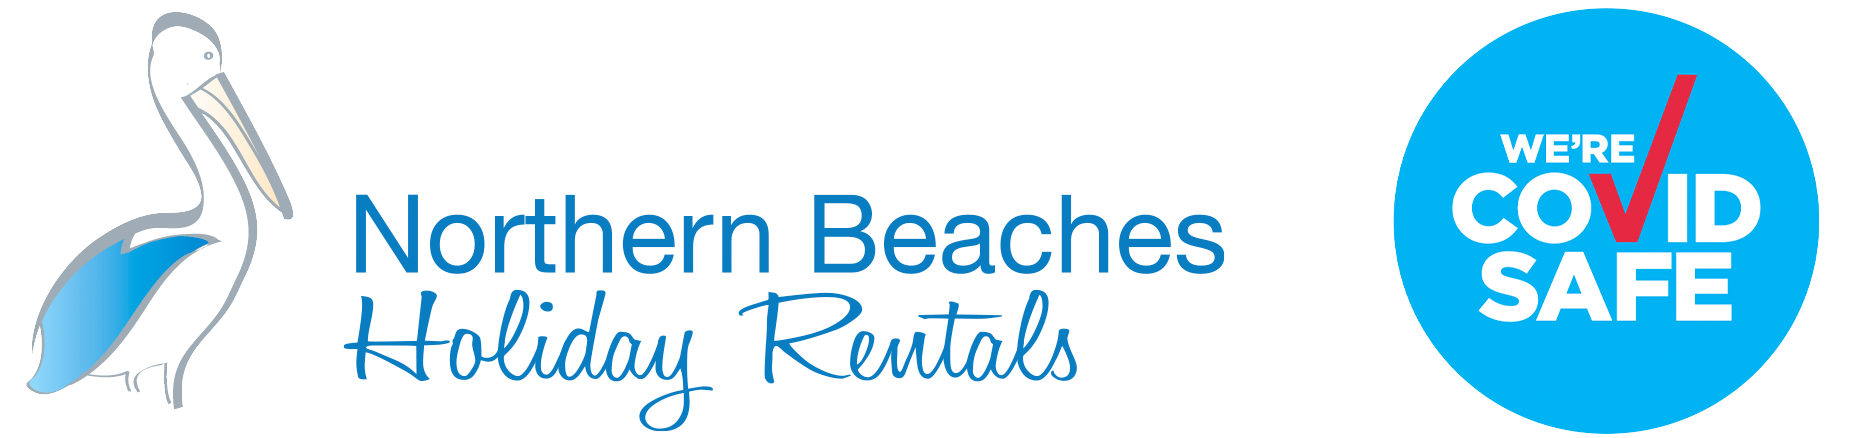 Northern Beaches Holiday Rentals - Sydney